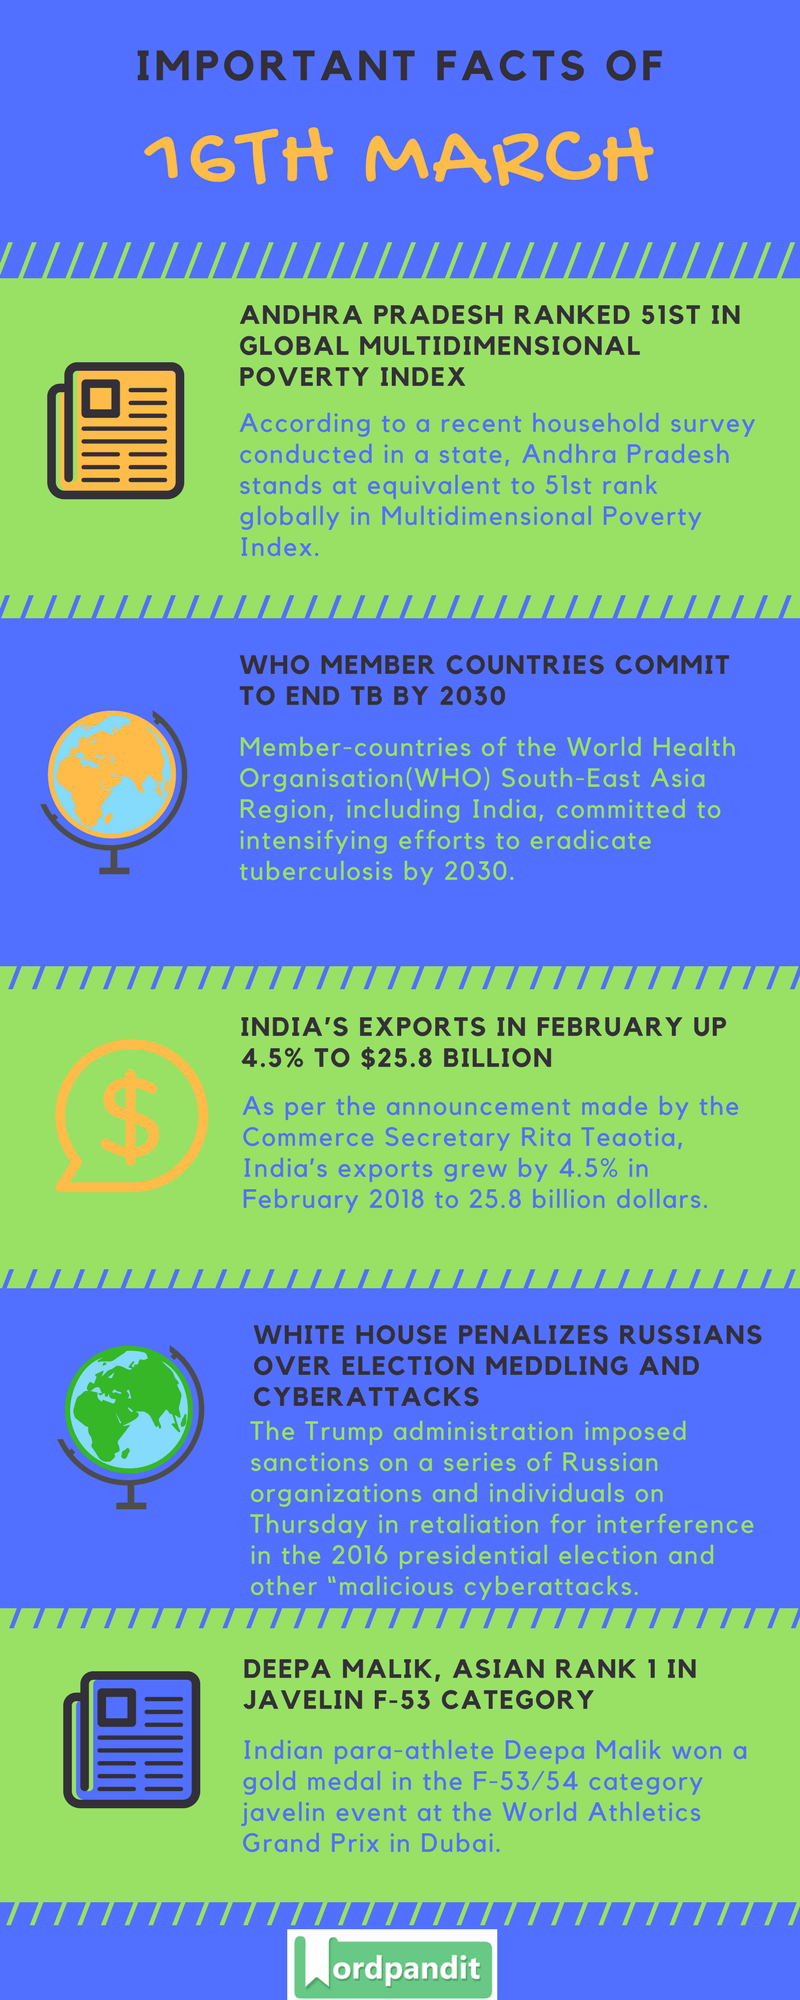 Daily Current Affairs 16 March 2018 Current Affairs Quiz March 16 2018 Current Affairs Infographic